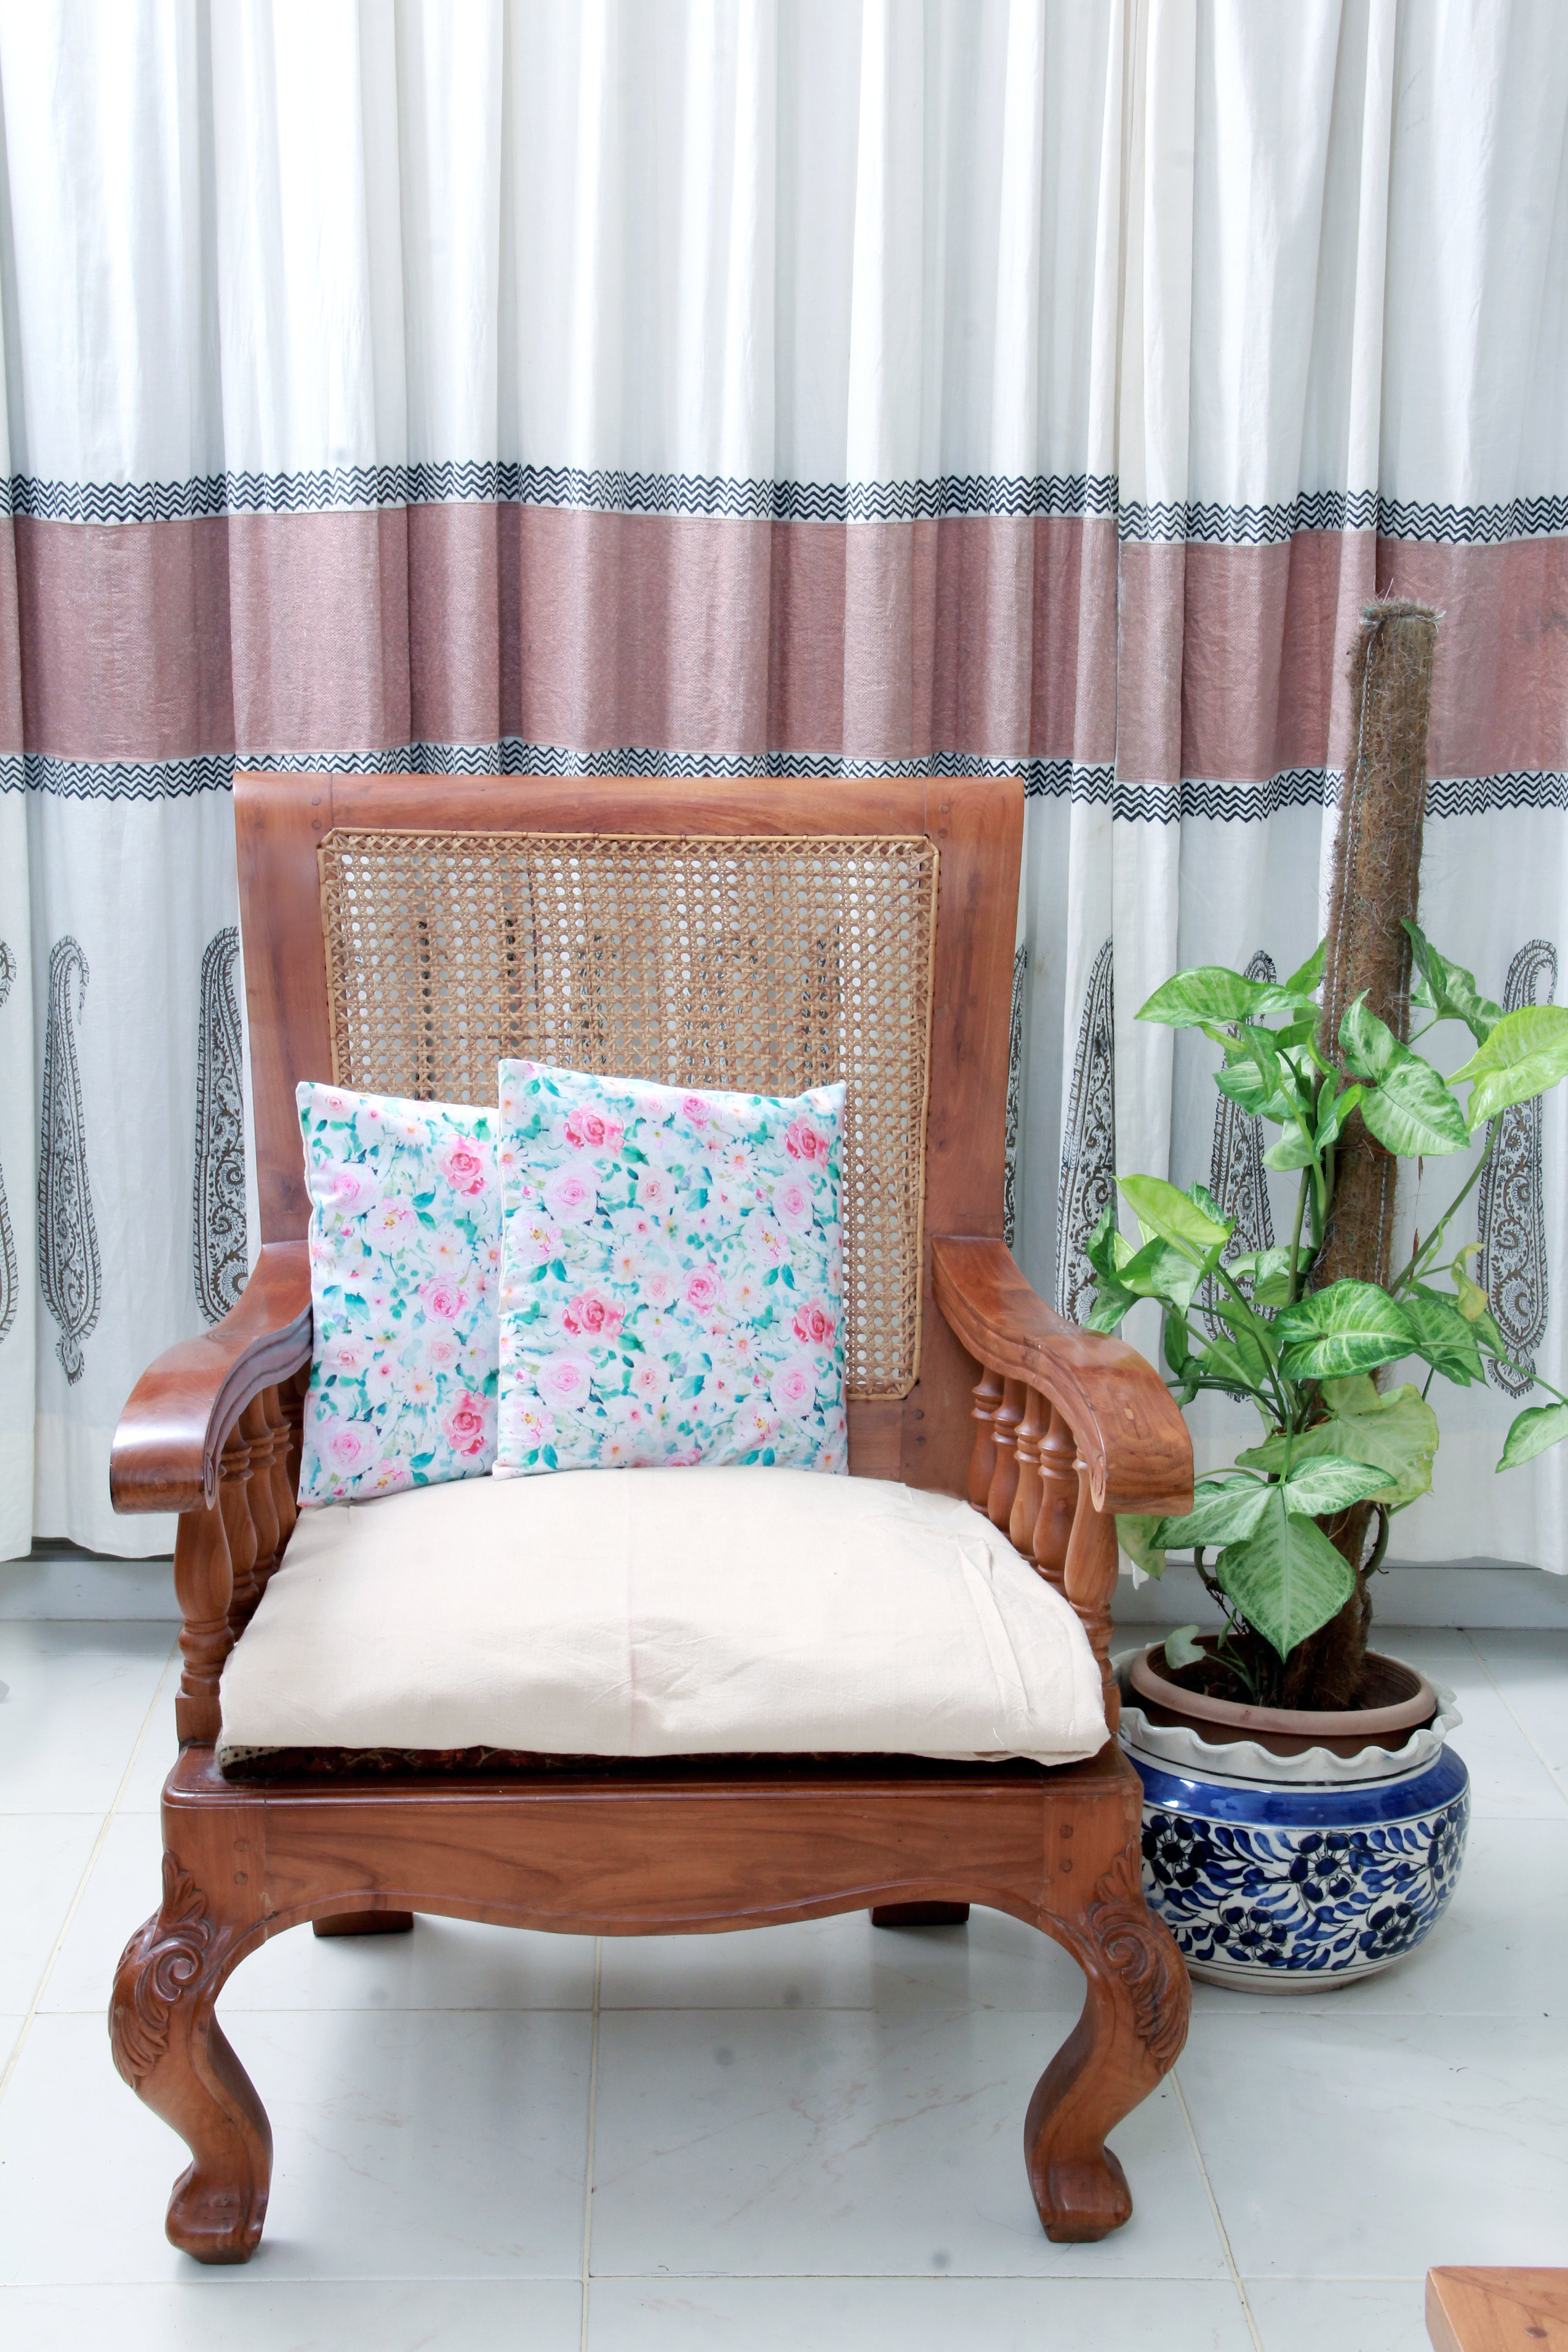 ALL OVER FLORAL PINK CUSHION COVER